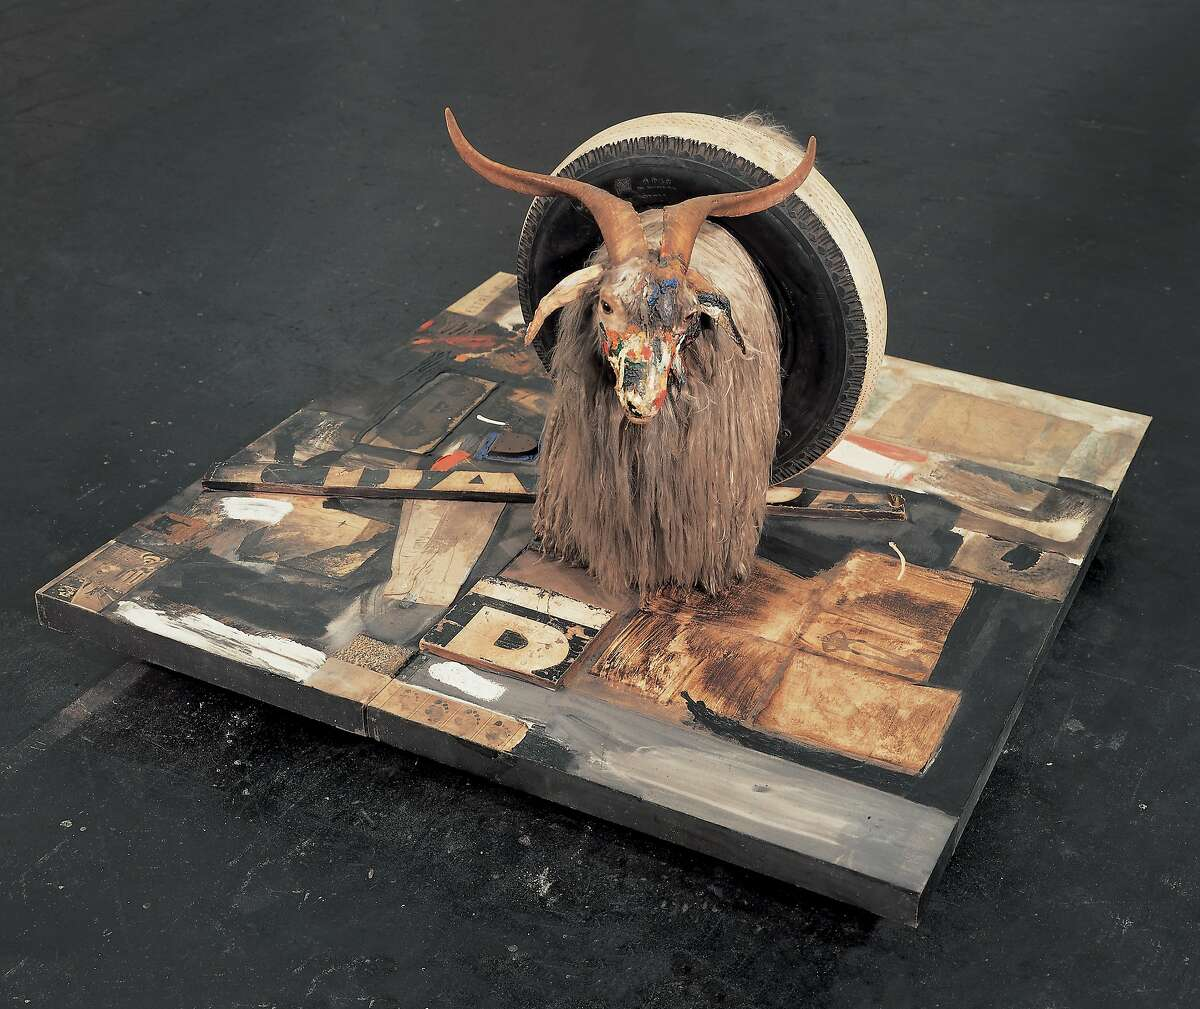 """FILE � In an undated handout photo, """"Monogram"""" by Robert Rauschenberg. In a move cutting against the grain of Modern and contemporary art, the Rauschenberg Foundation has adopted a policy of making images of the artist�s work much more widely available for free. (Robert Rauschenberg Foundation via The New York Times) -- NO SALES; FOR EDITORIAL USE ONLY WITH STORY SLUGGED RAUSCHENBERG FAIR USE BY KENNEDY FOR FEB.27, 2016. ALL OTHER USE PROHIBITED. �"""